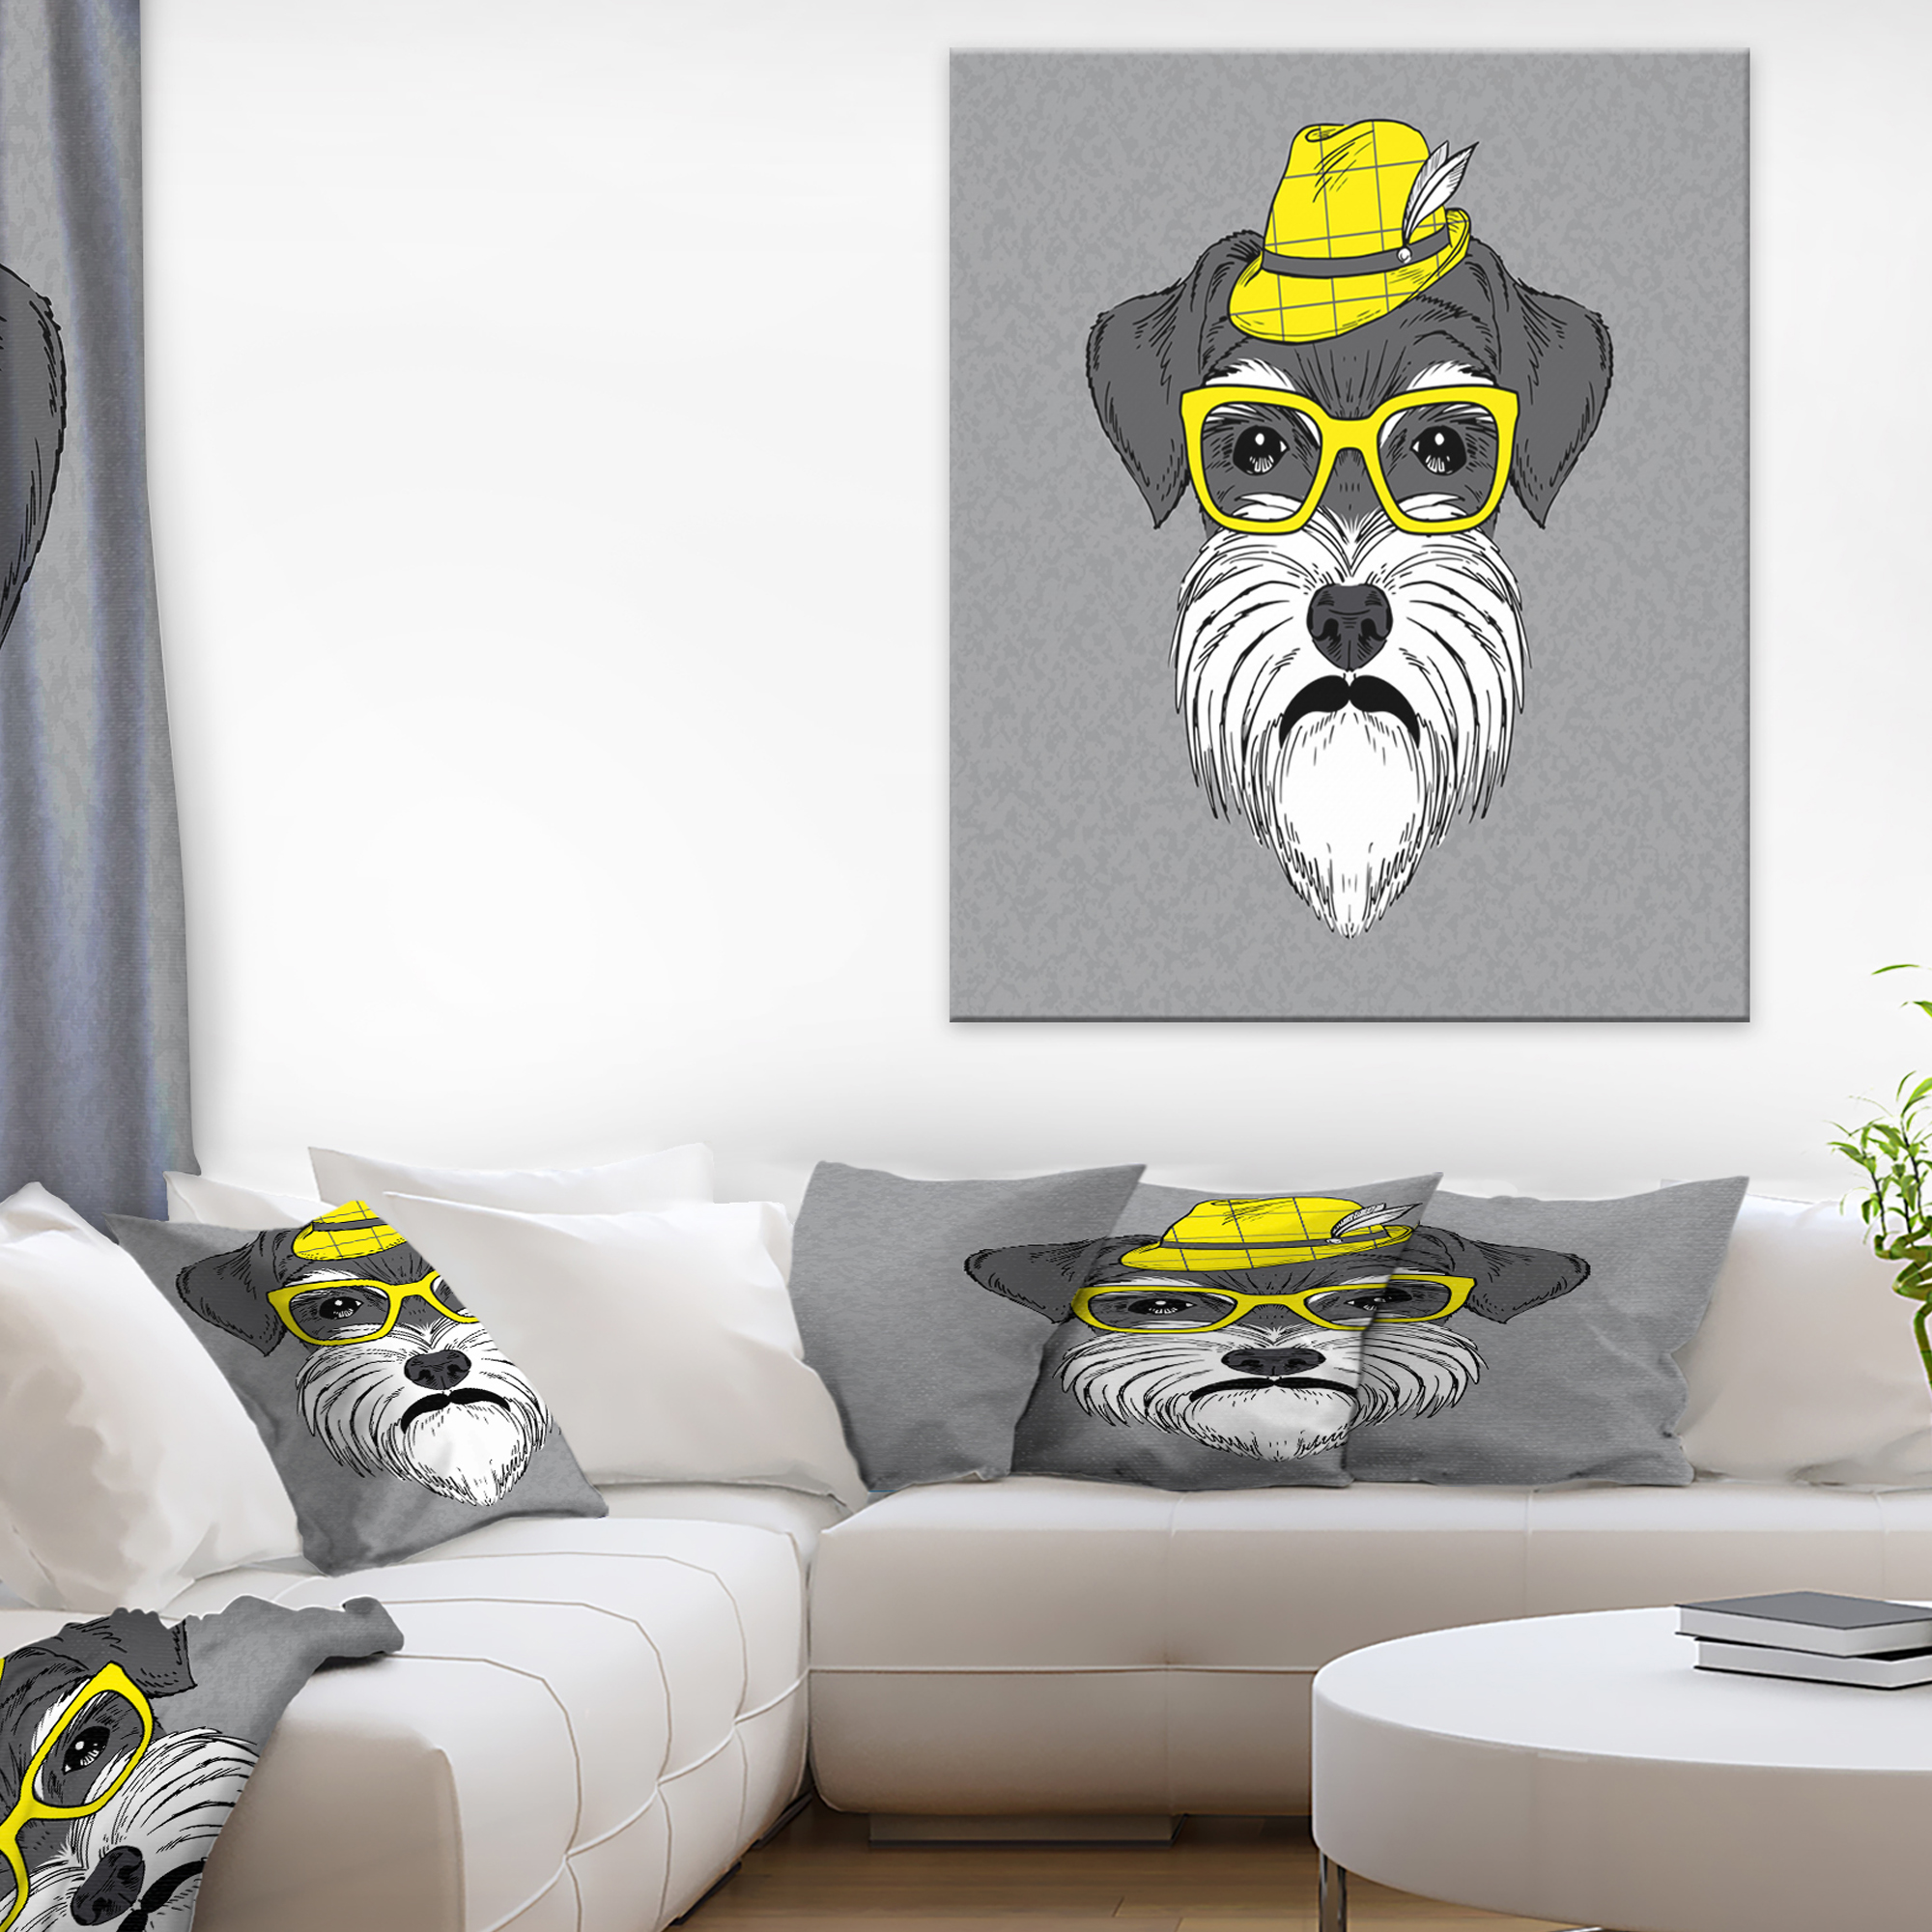 Schnauzer with Hat and Glasses - Contemporary Animal Art Canvas - image 3 of 3